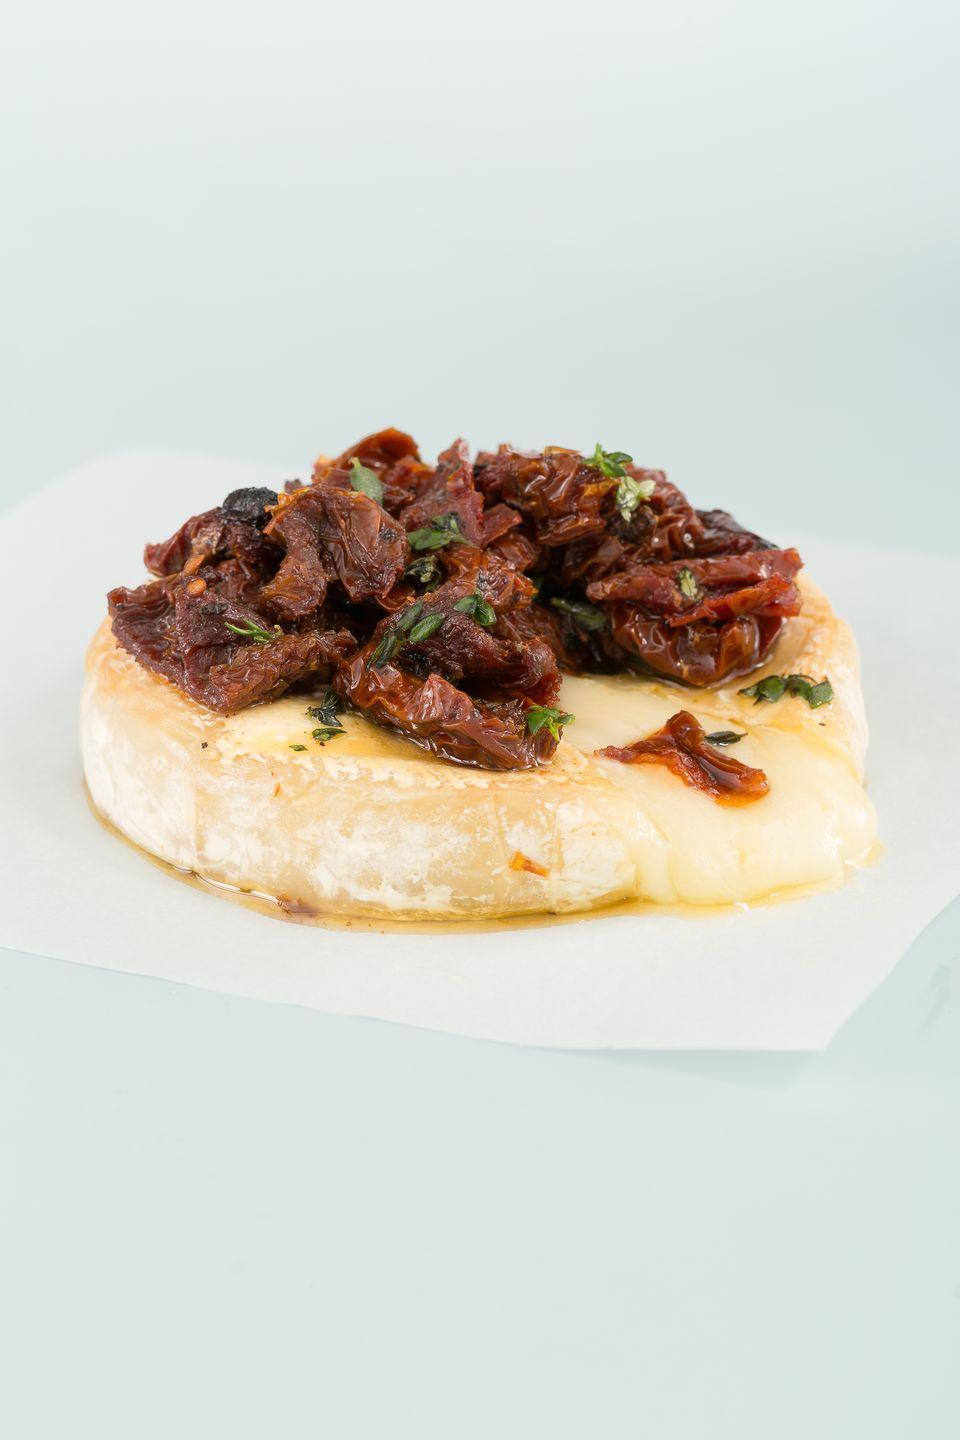 """<p>It sounds fancy, but you won't believe how stupid easy it is to make.</p><p>Get the recipe from <a href=""""https://www.delish.com/cooking/recipe-ideas/recipes/a44695/baked-brie-sundried-tomatoes-thyme-recipe/"""" rel=""""nofollow noopener"""" target=""""_blank"""" data-ylk=""""slk:Delish"""" class=""""link rapid-noclick-resp"""">Delish</a>.</p>"""